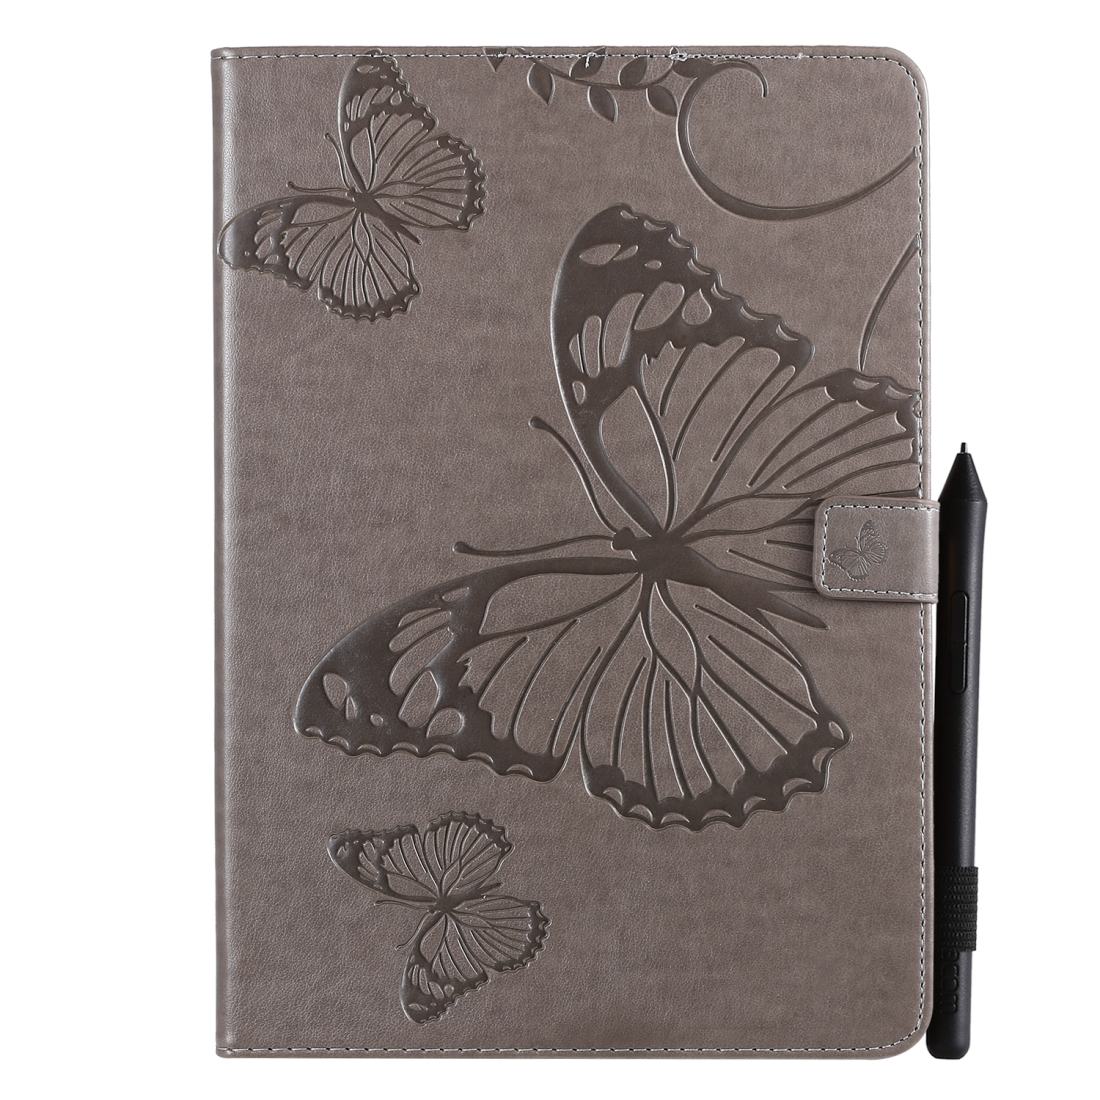 iPad 7th Generation Case (10.2 Inch) Also Fits /Pro 10.5/Air 2019 Leather Butterfly Design (Grey)